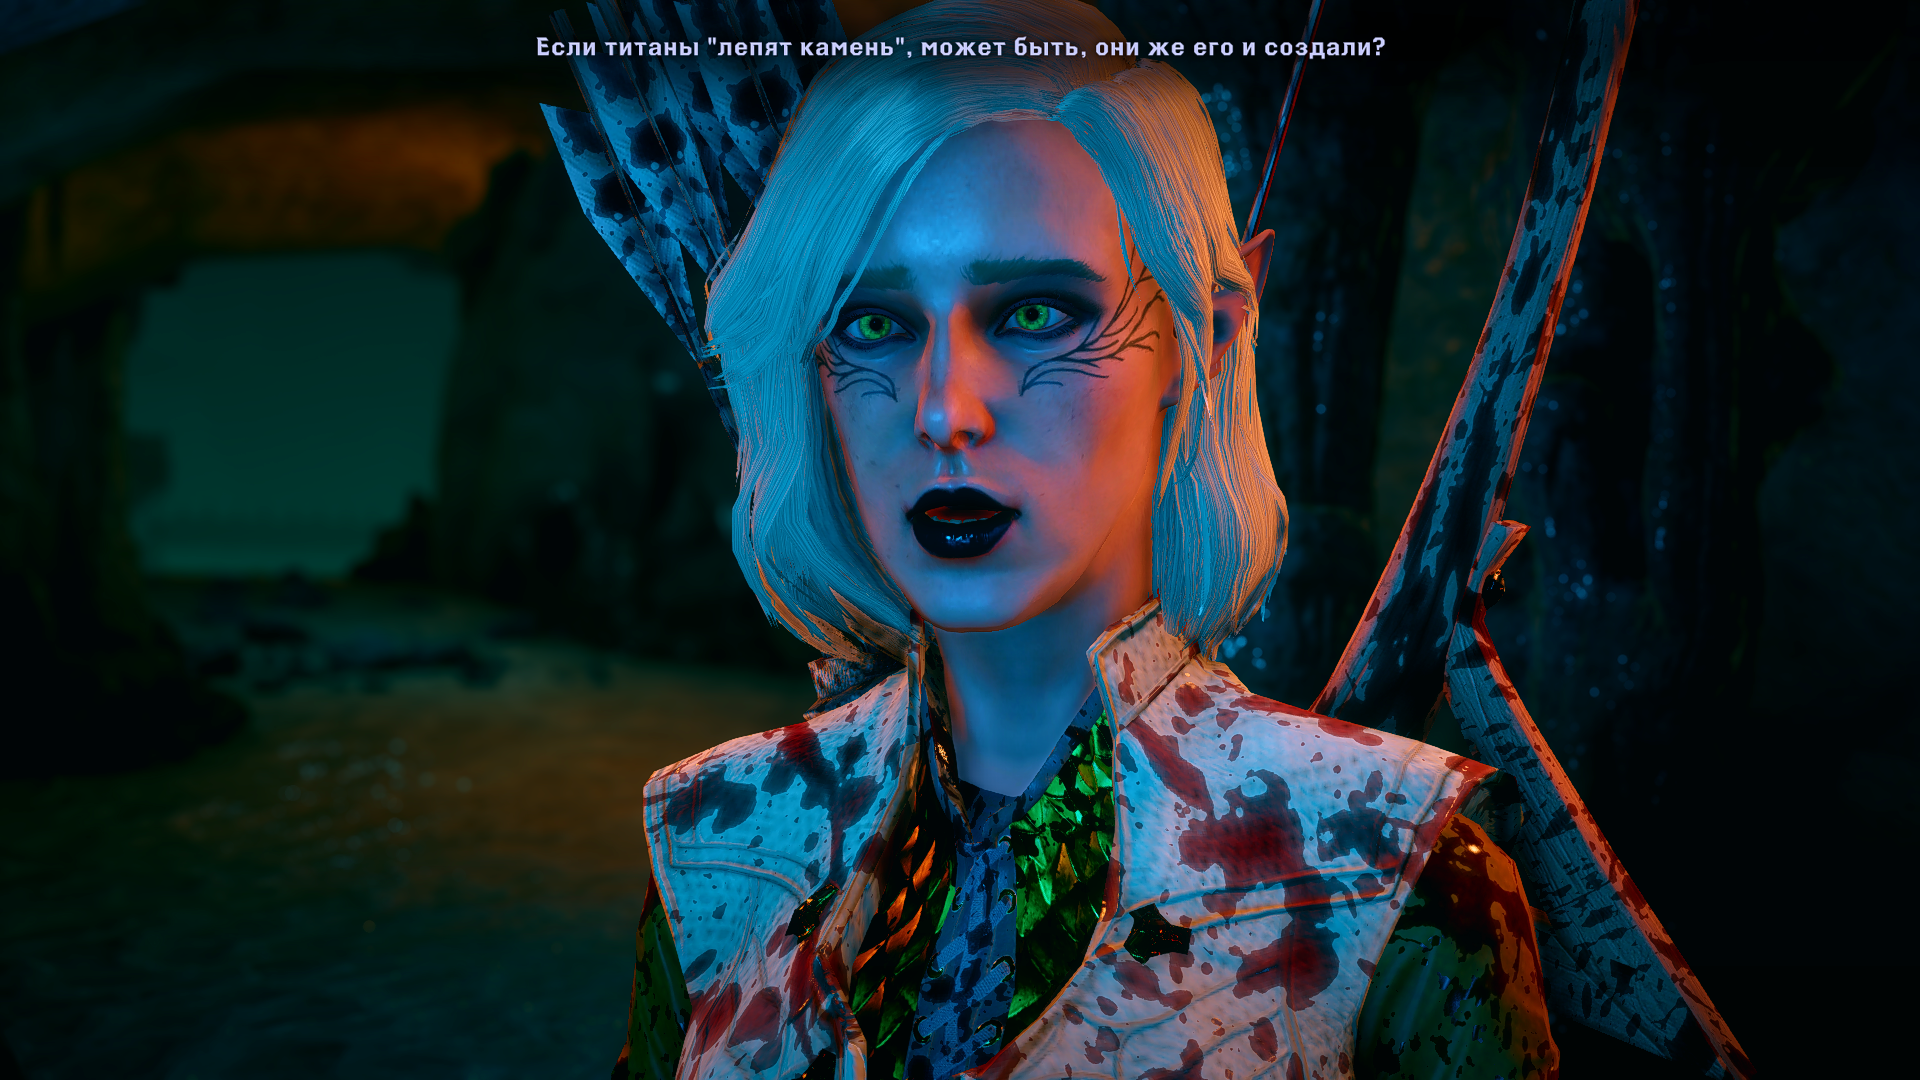 Dragon Age  Inquisition Screenshot 2021.05.07 - 22.21.01.76.png - Dragon Age: Inquisition